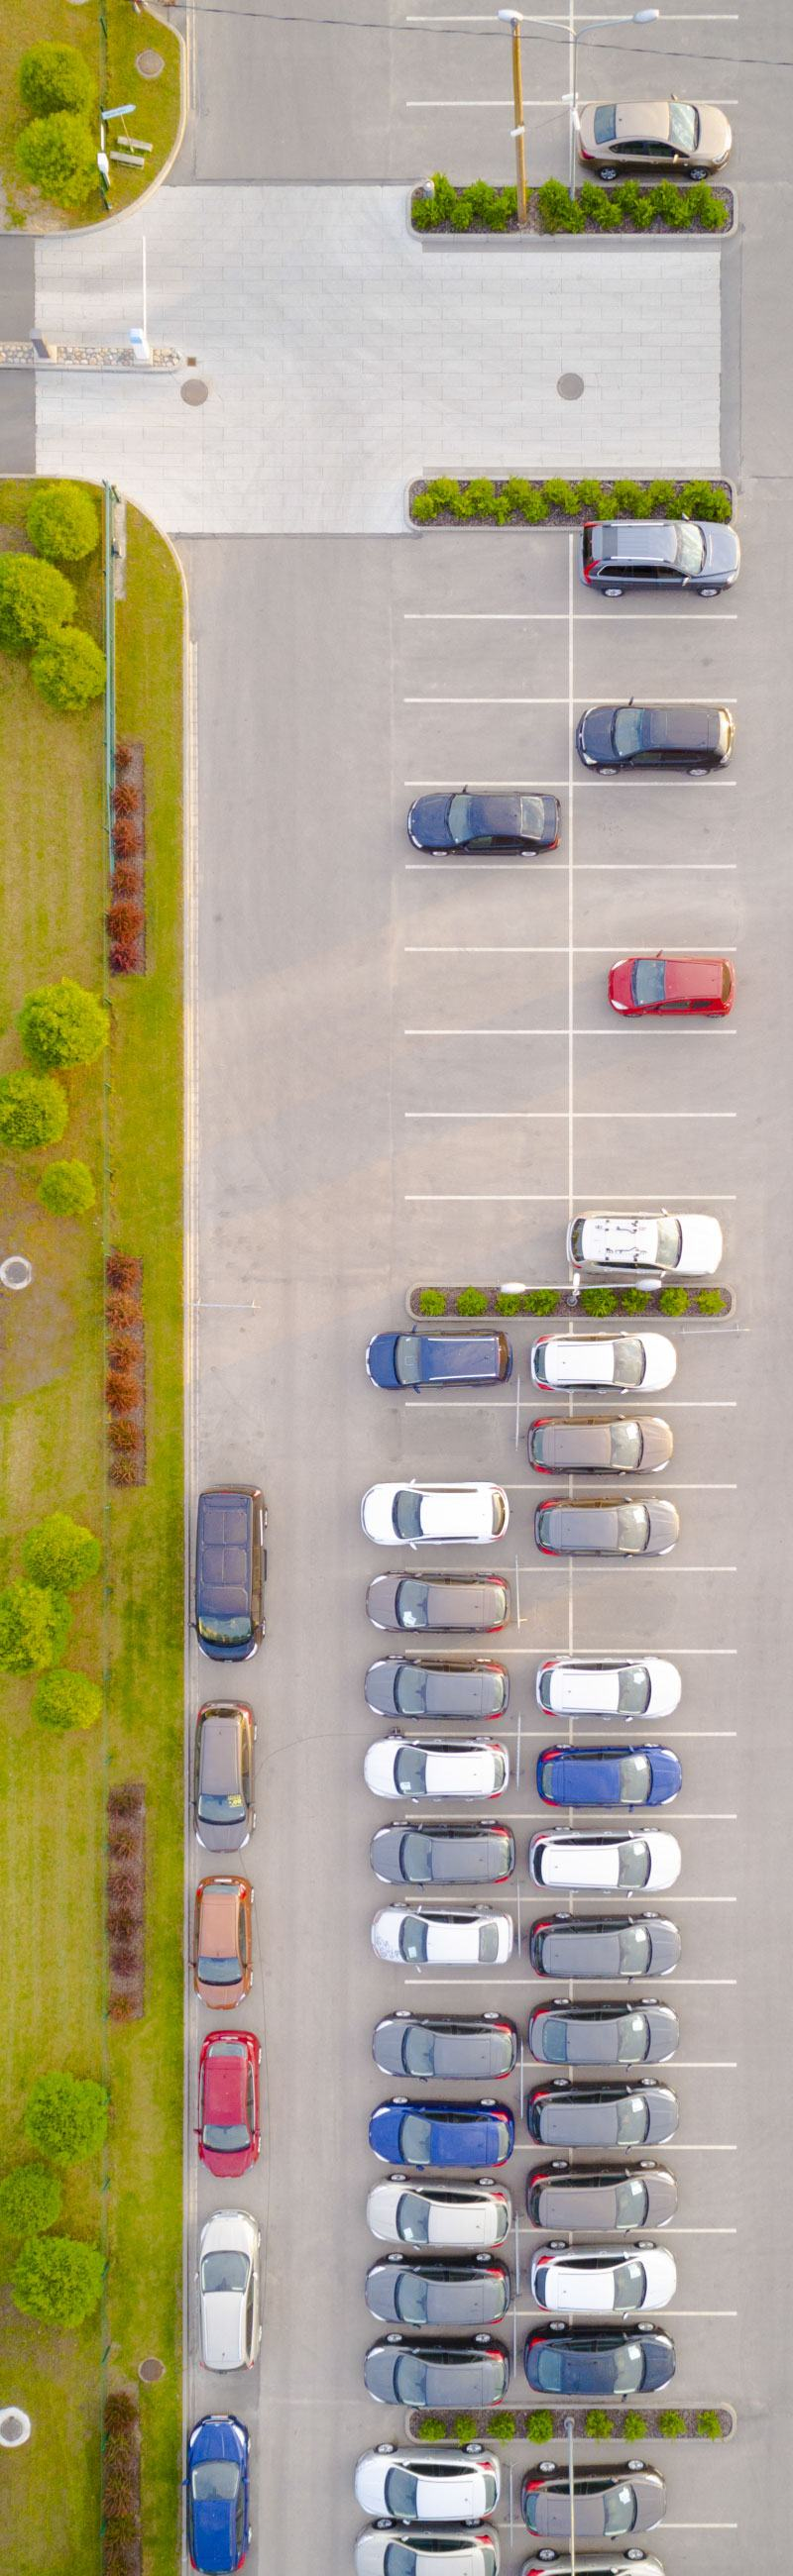 sidebar parking lot